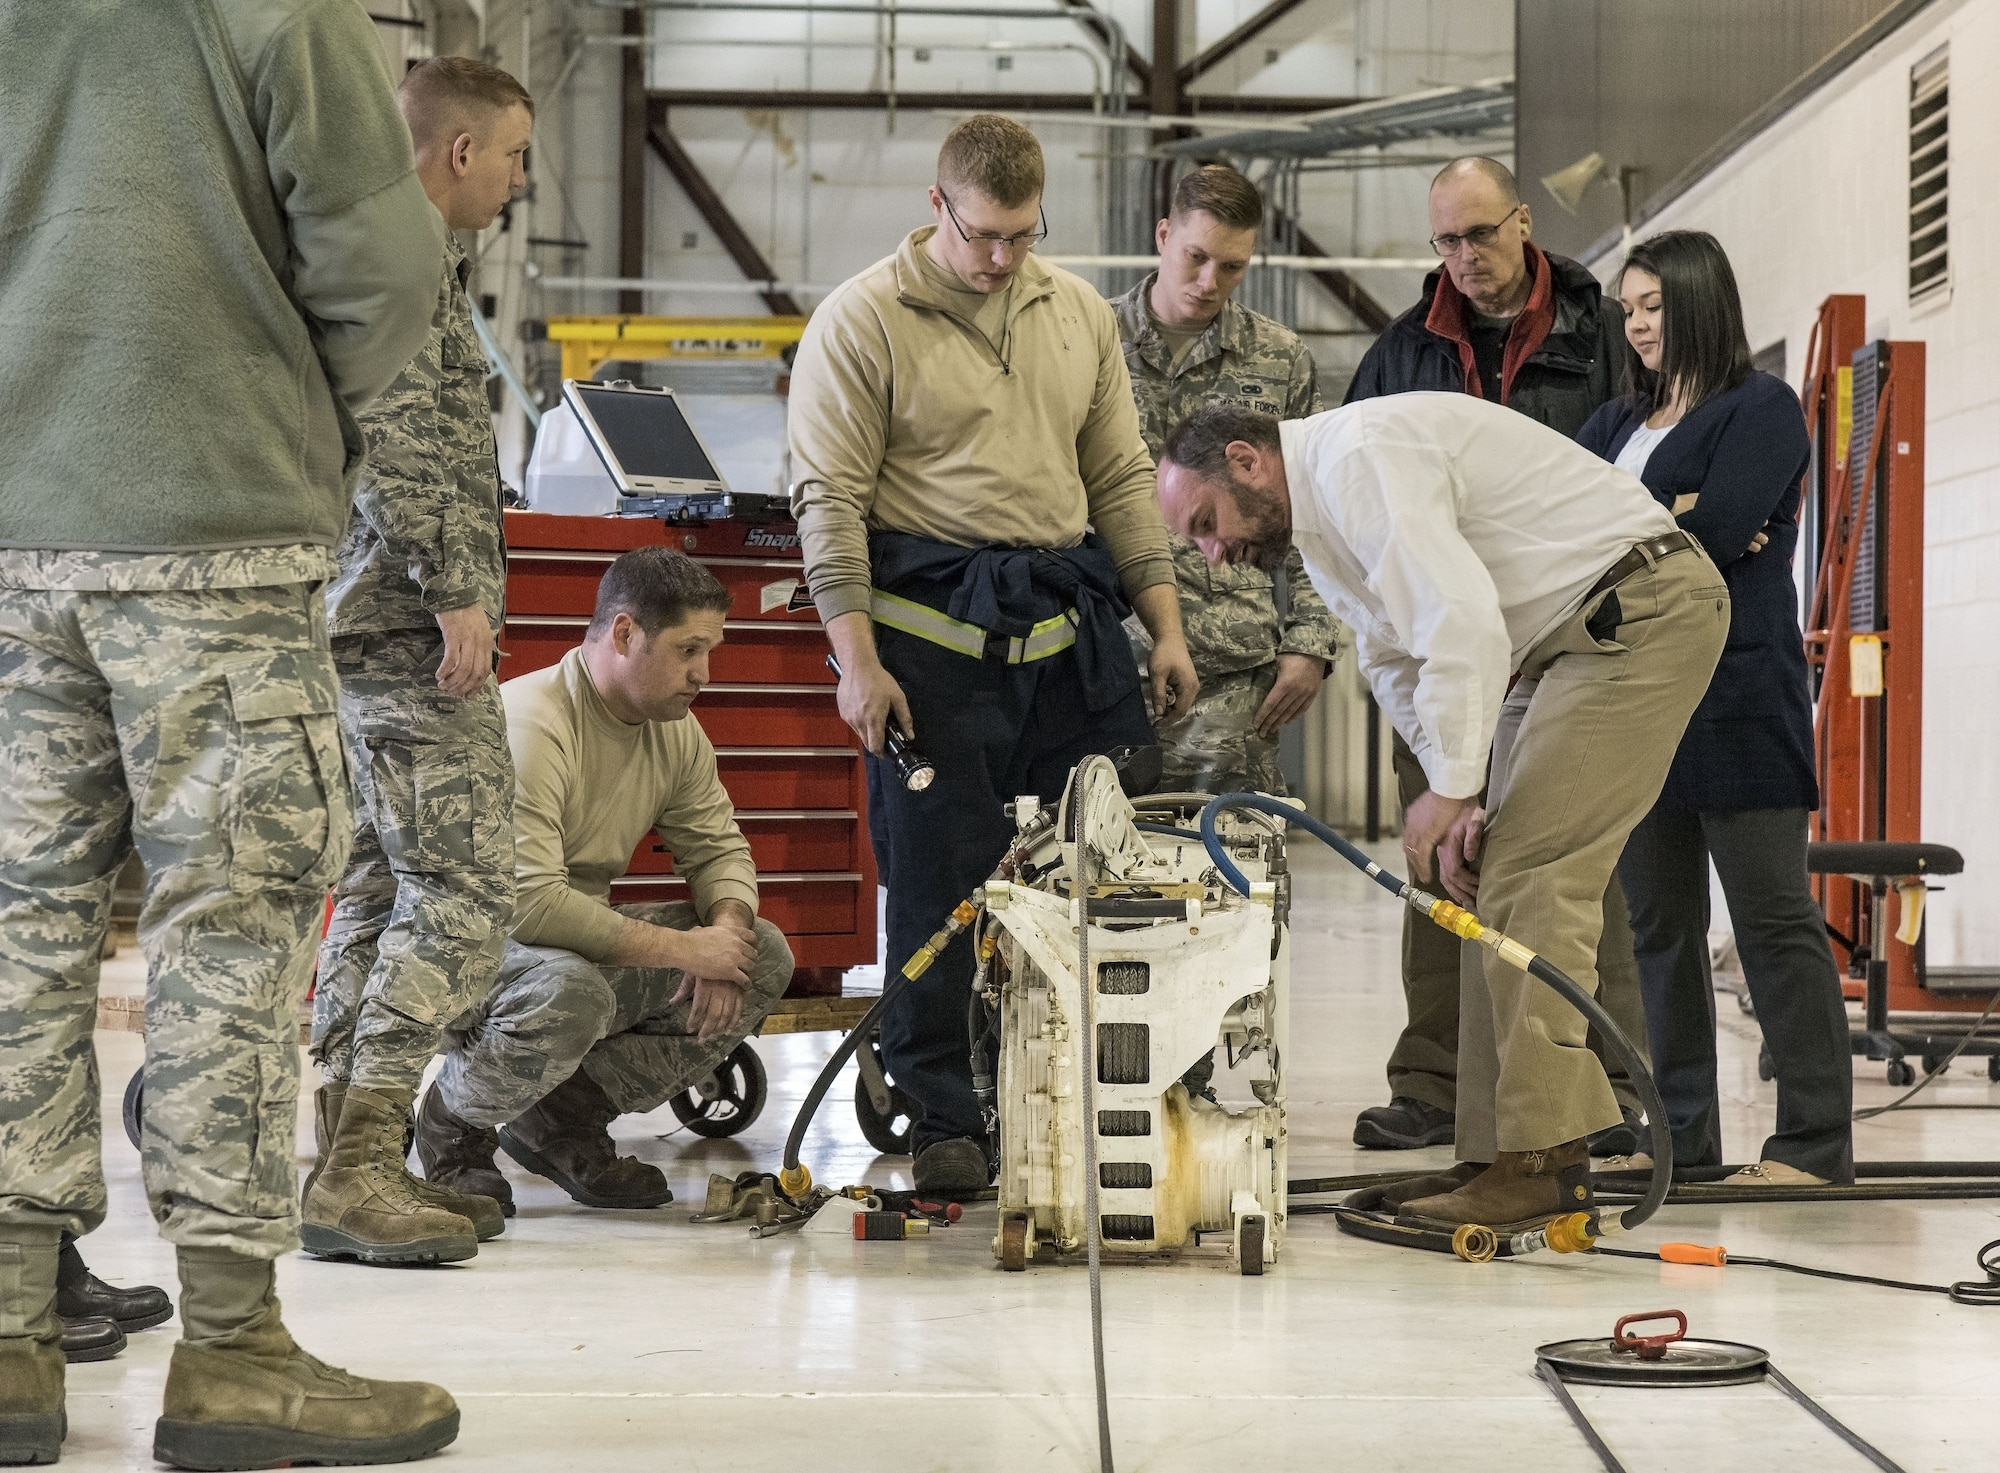 Justin Smoak, Samson Rope application engineering manager, Ferndale, Wash., observes how the synthetic winch line feeds into a C-17 Globemaster III winch assembly, Jan. 30, 2018 at Dover Air Force Base, Del. Smoak watched maintainers attach and wind the cable onto the winch while looking for any potential issues. (U.S. Air Force photo by Roland Balik)